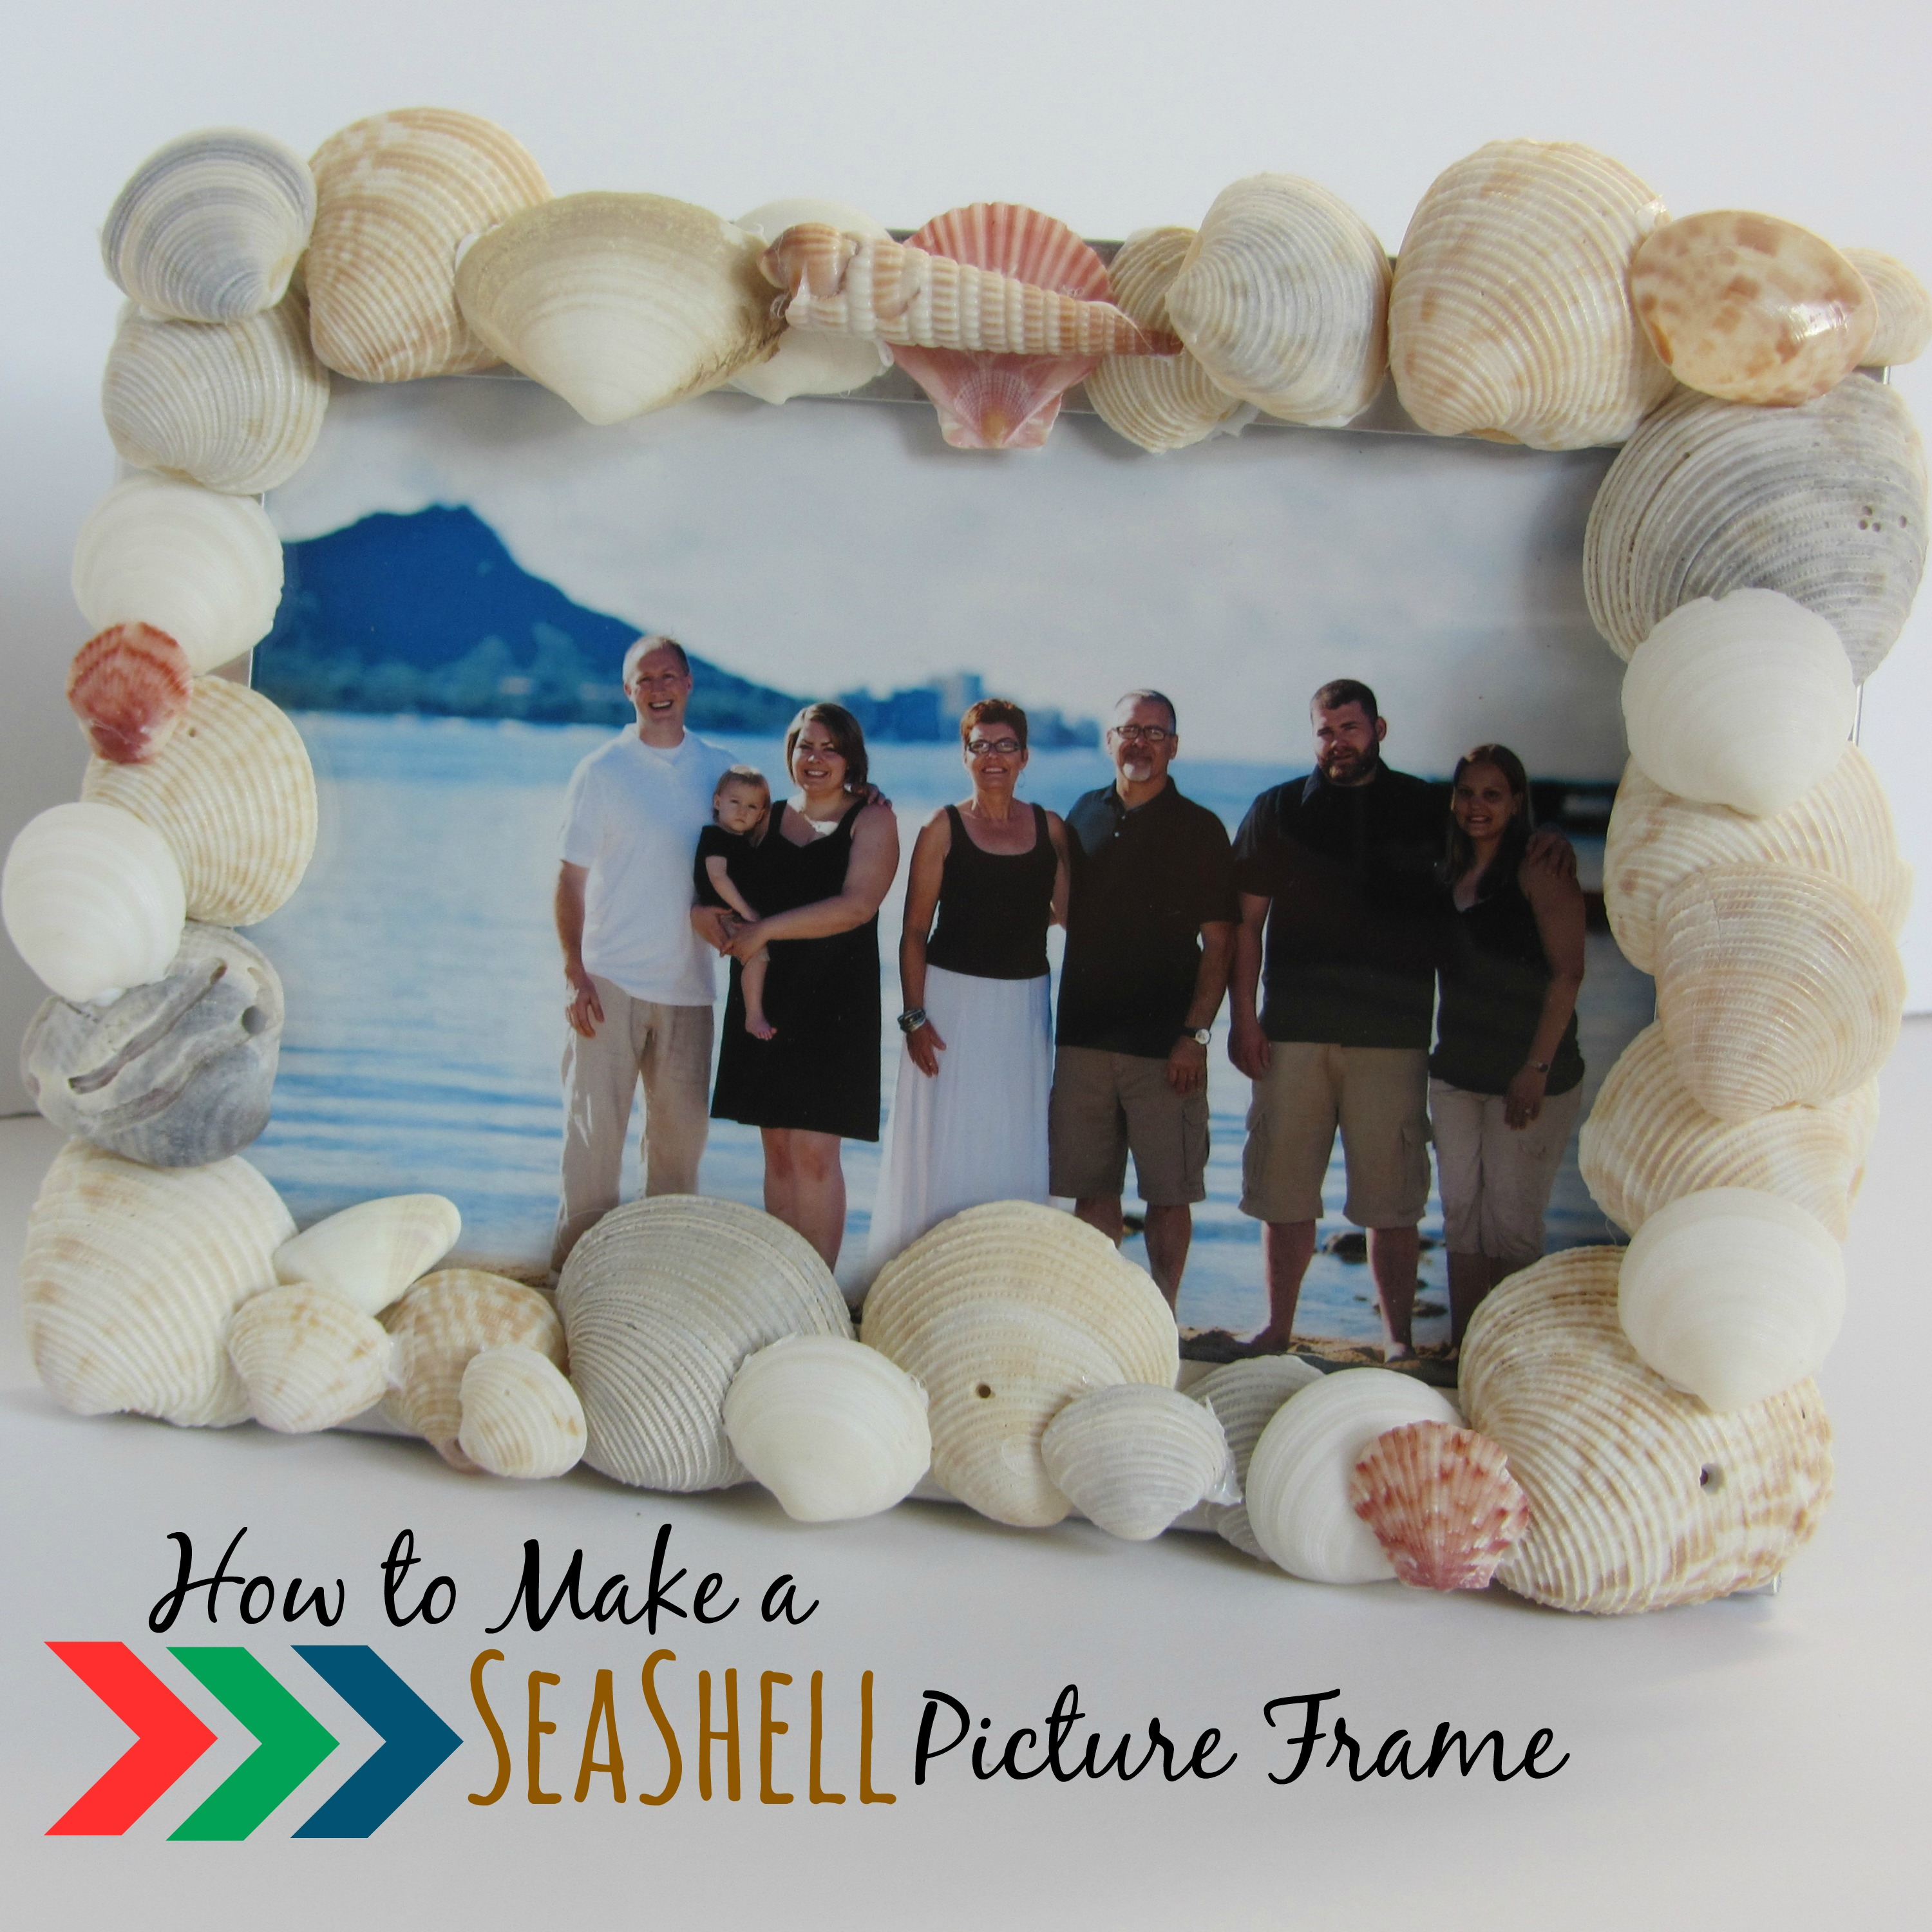 How To Make A Seashell Picture Frame My Big Fat Happy Life